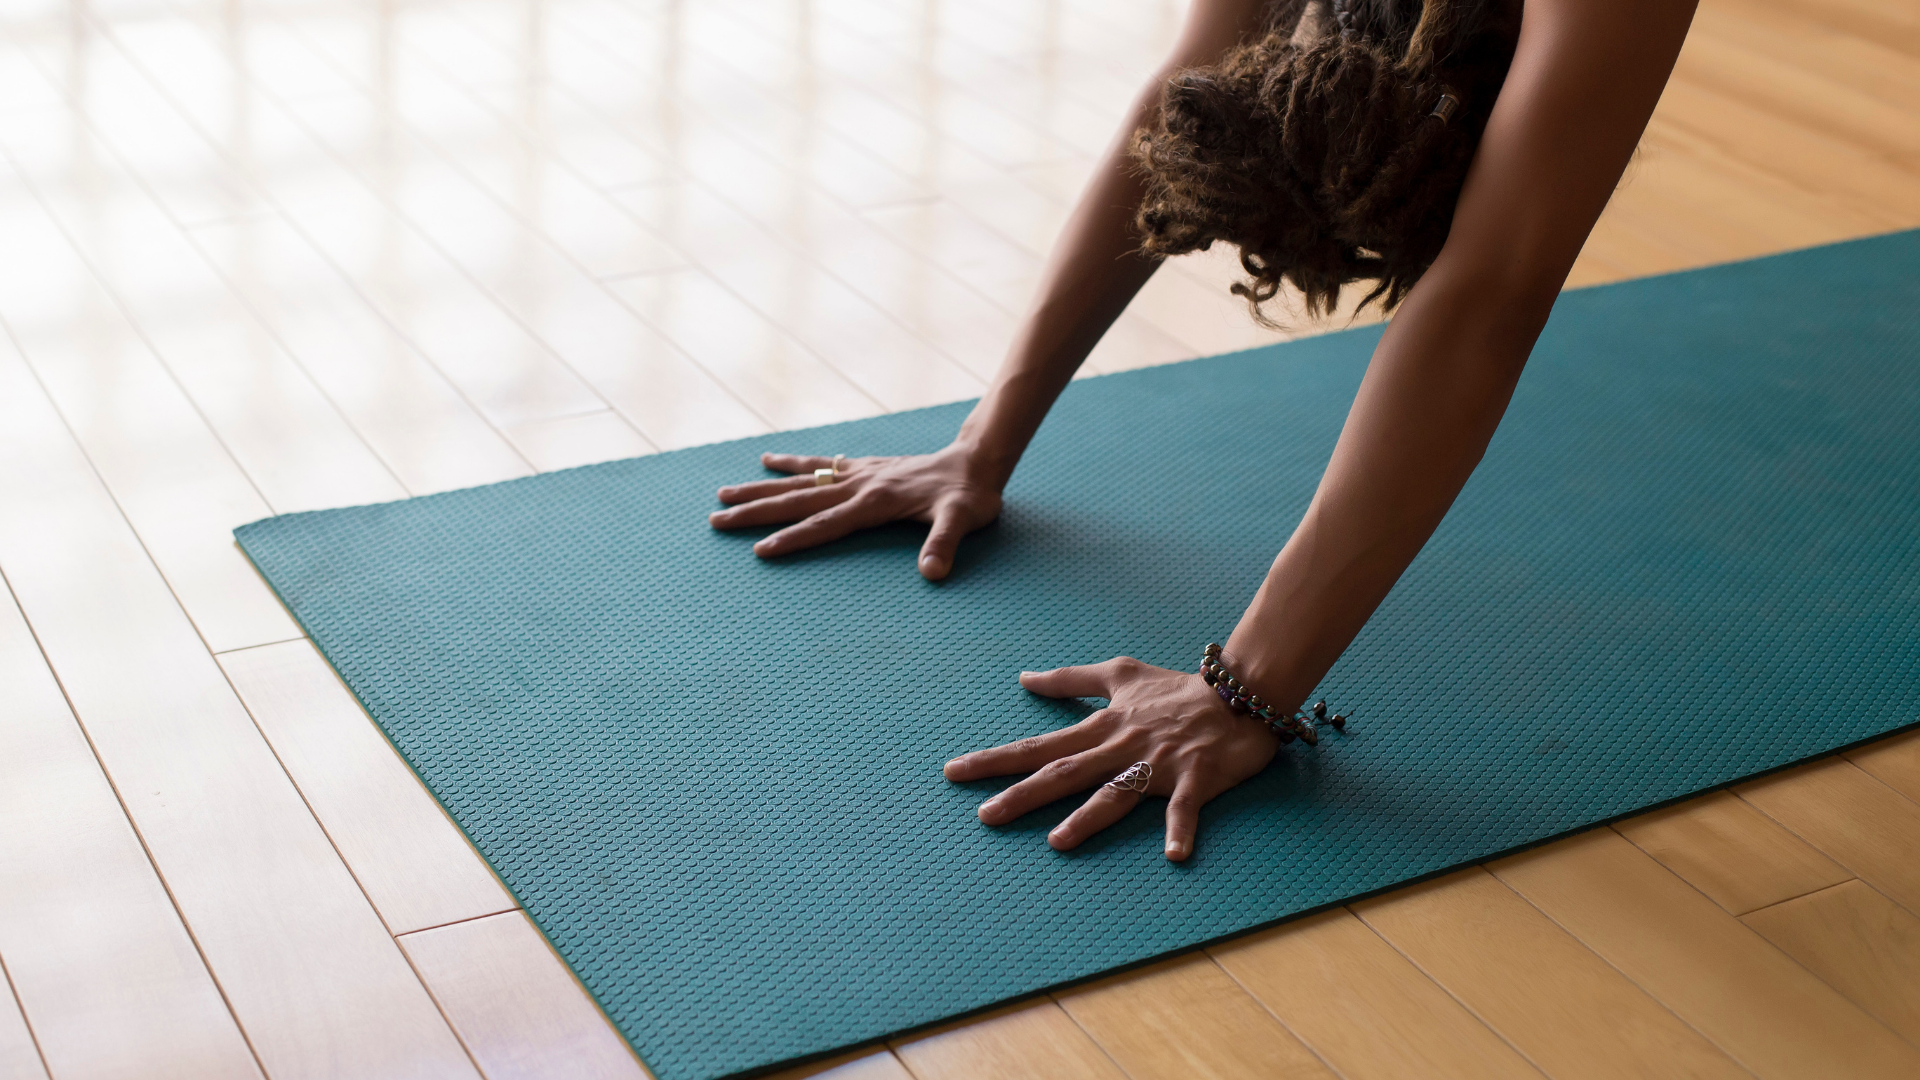 Yoga in the time of COVID